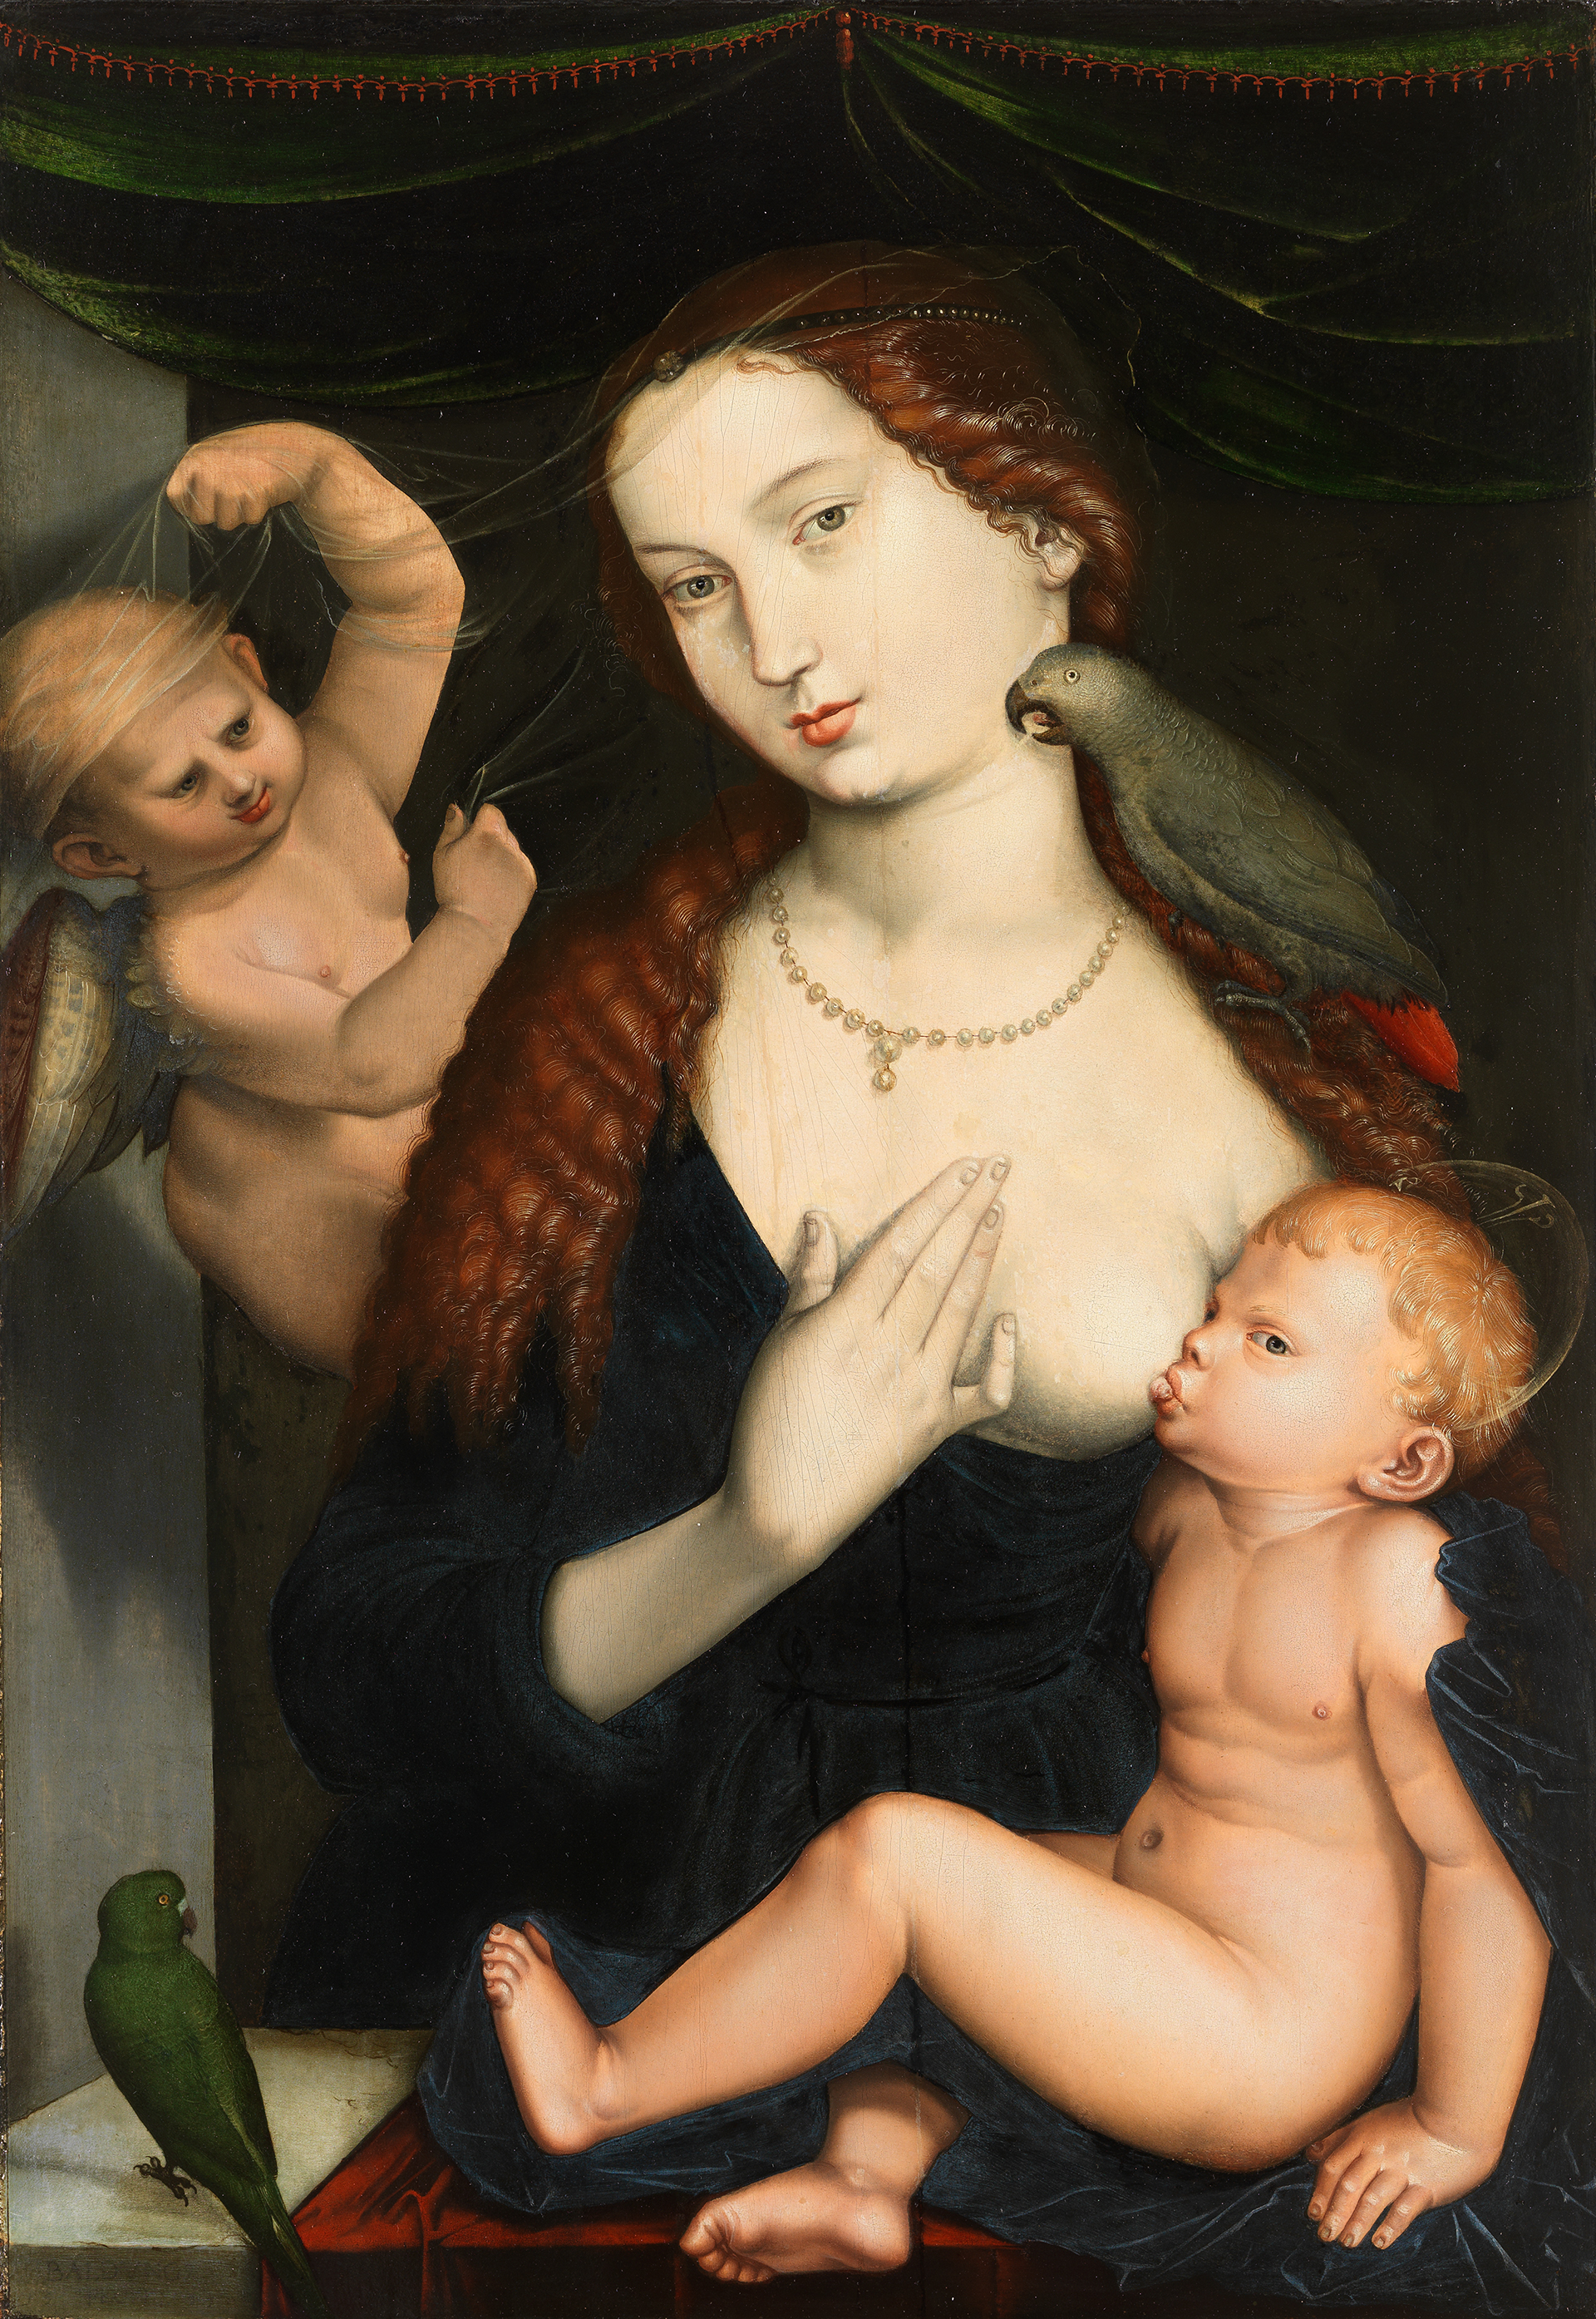 Image of Hans Baldung Grien: Virgin with the Child and Parrots, 1533, lent by Germanisches Nationalmuseum Nuremberg.